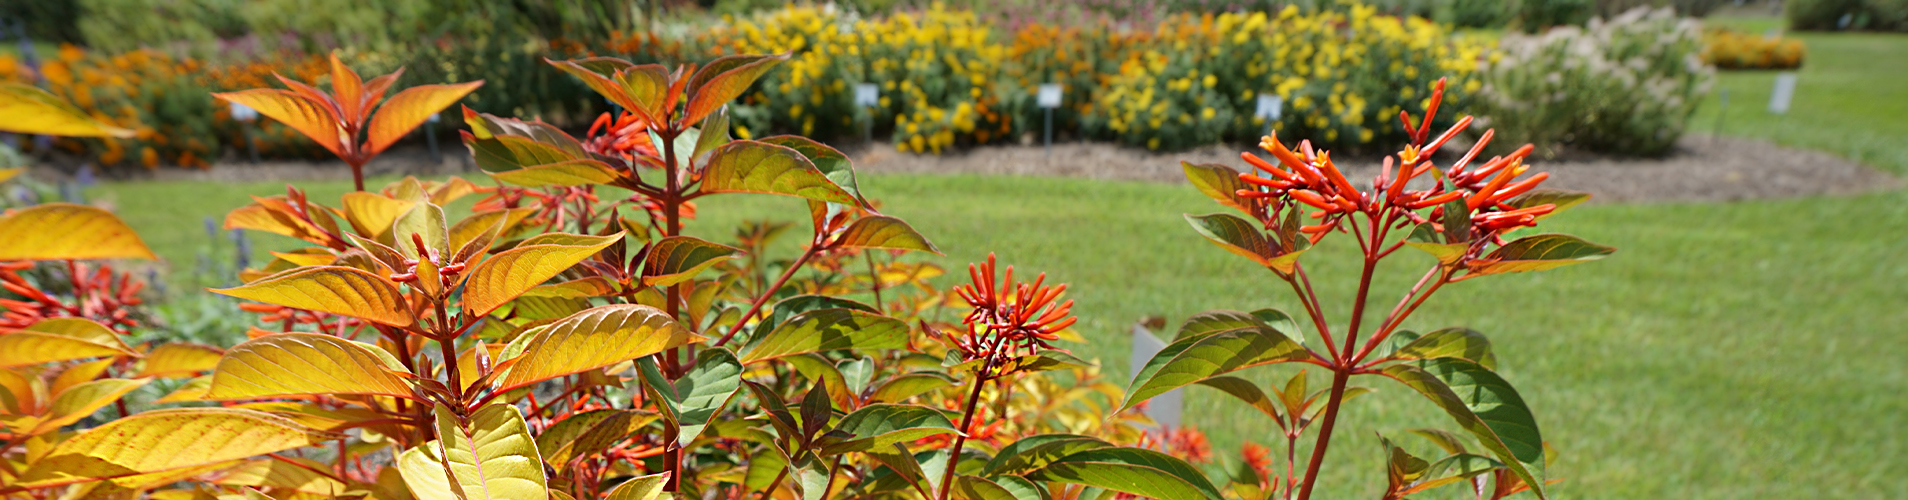 Lime-Sizzler-Firebush-orange-and-red-flower.jpg thumbnail